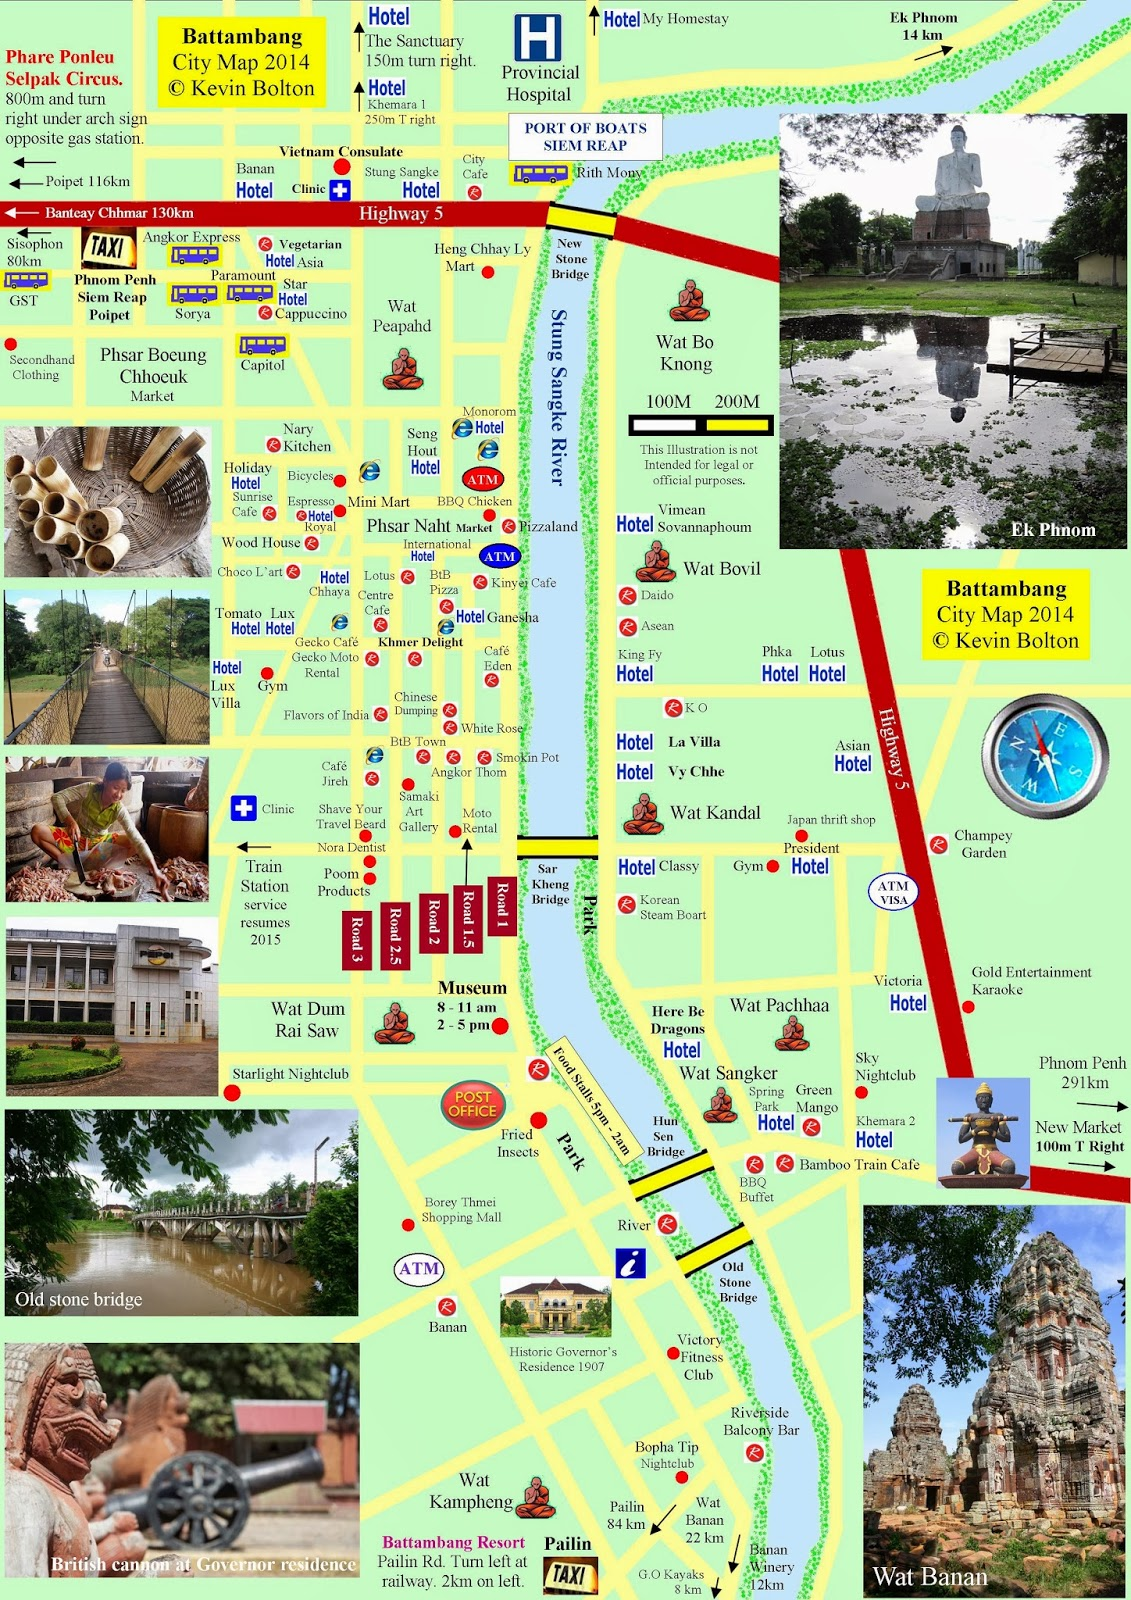 All About Battambang – Cambodia Tourist Attractions Map